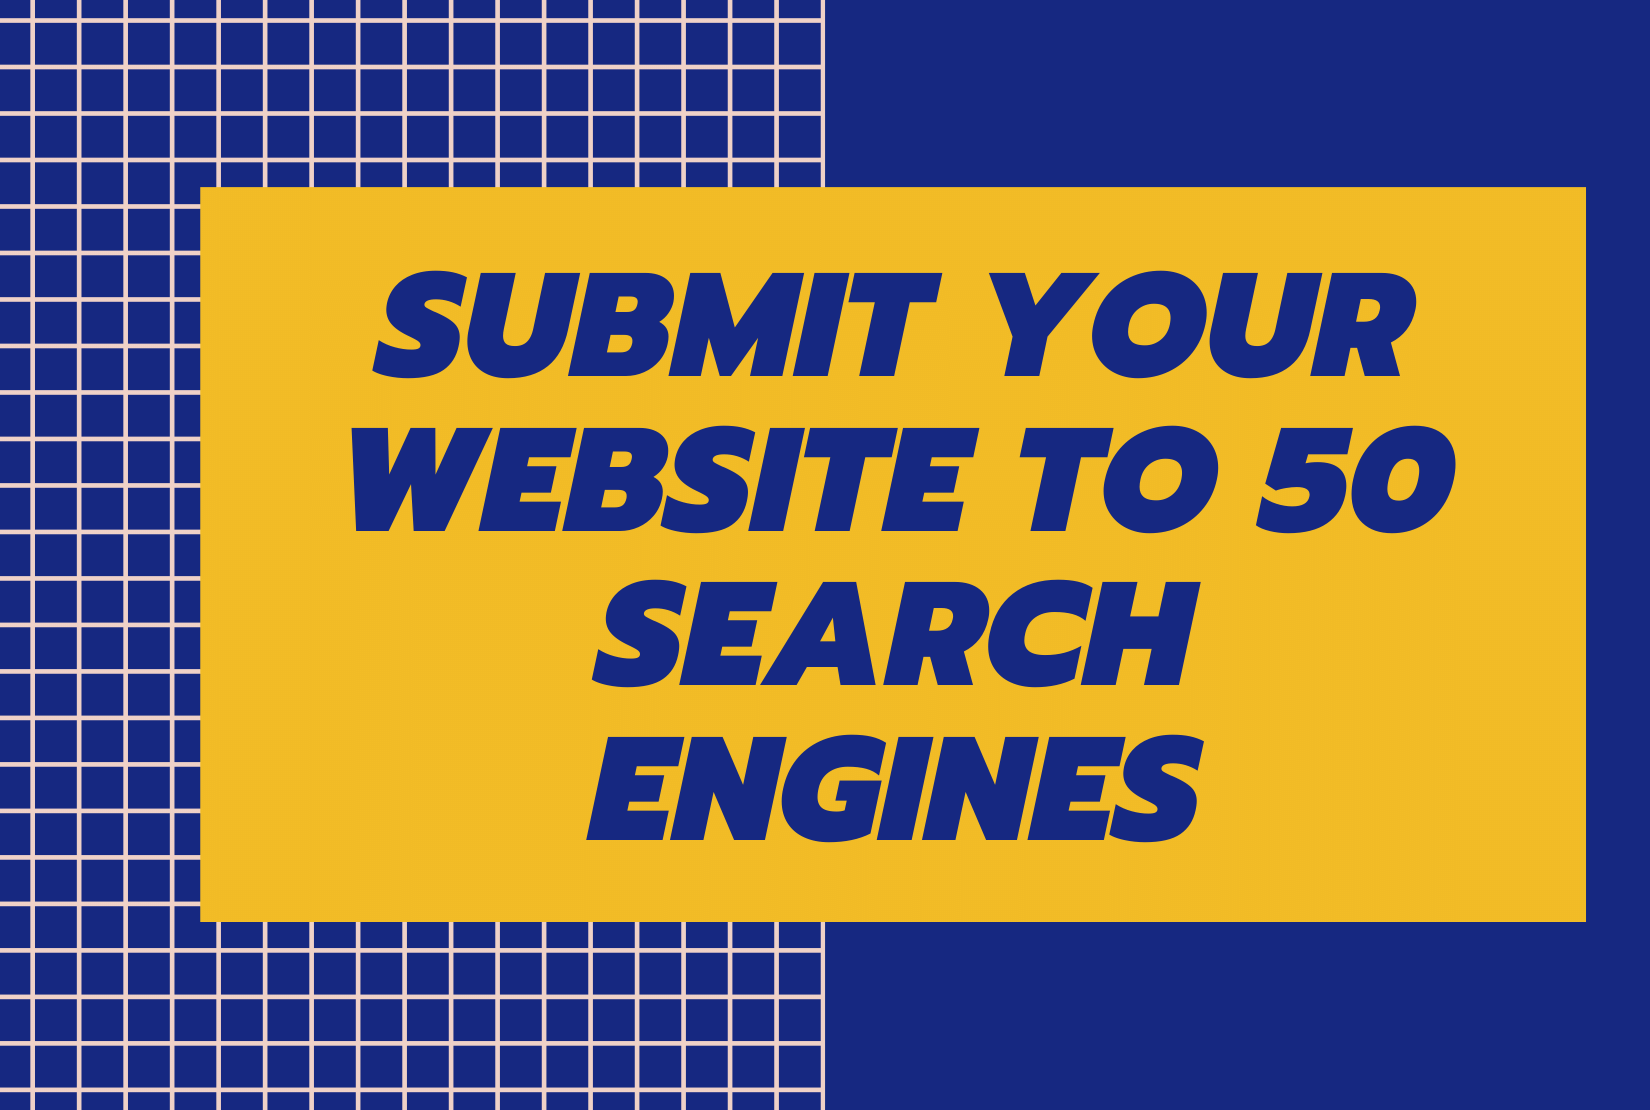 I will manually submit website URL to 50 Search Engines